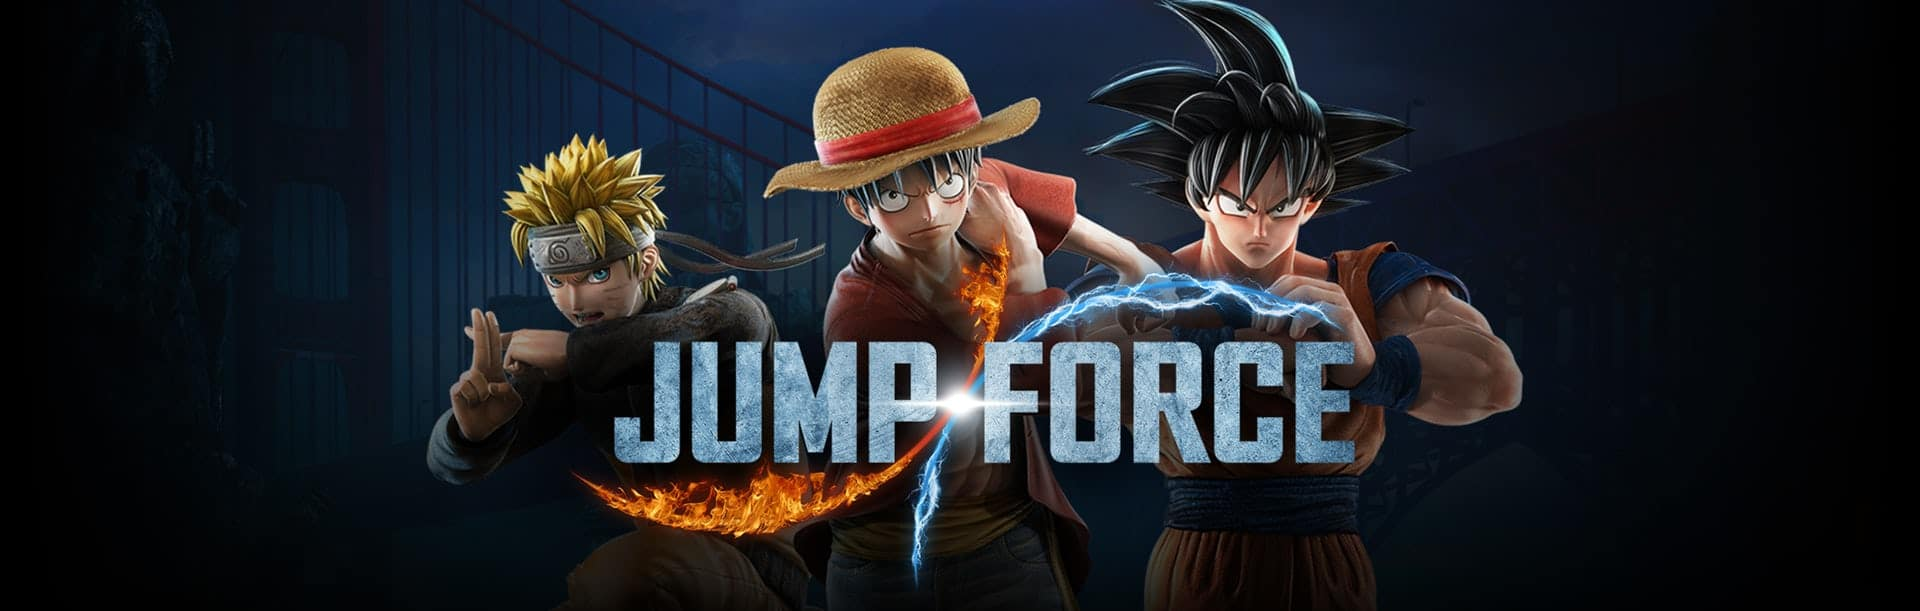 PCDD: Fanatical Star Deal - Steam Key - Jump Force $13.99